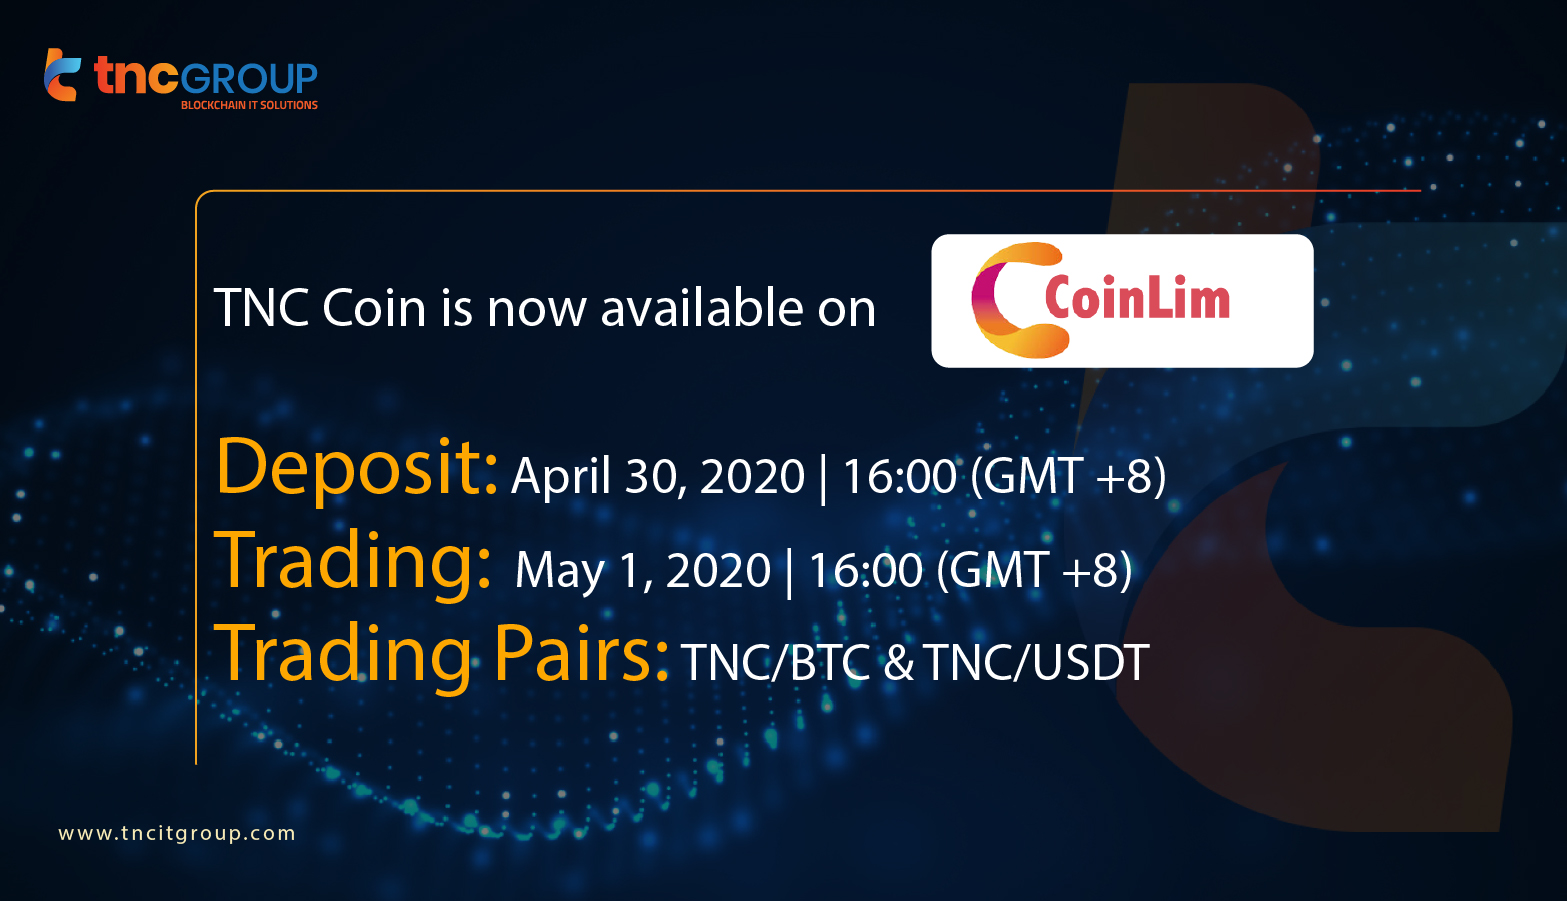 TNC Coin is now available on CoinLim